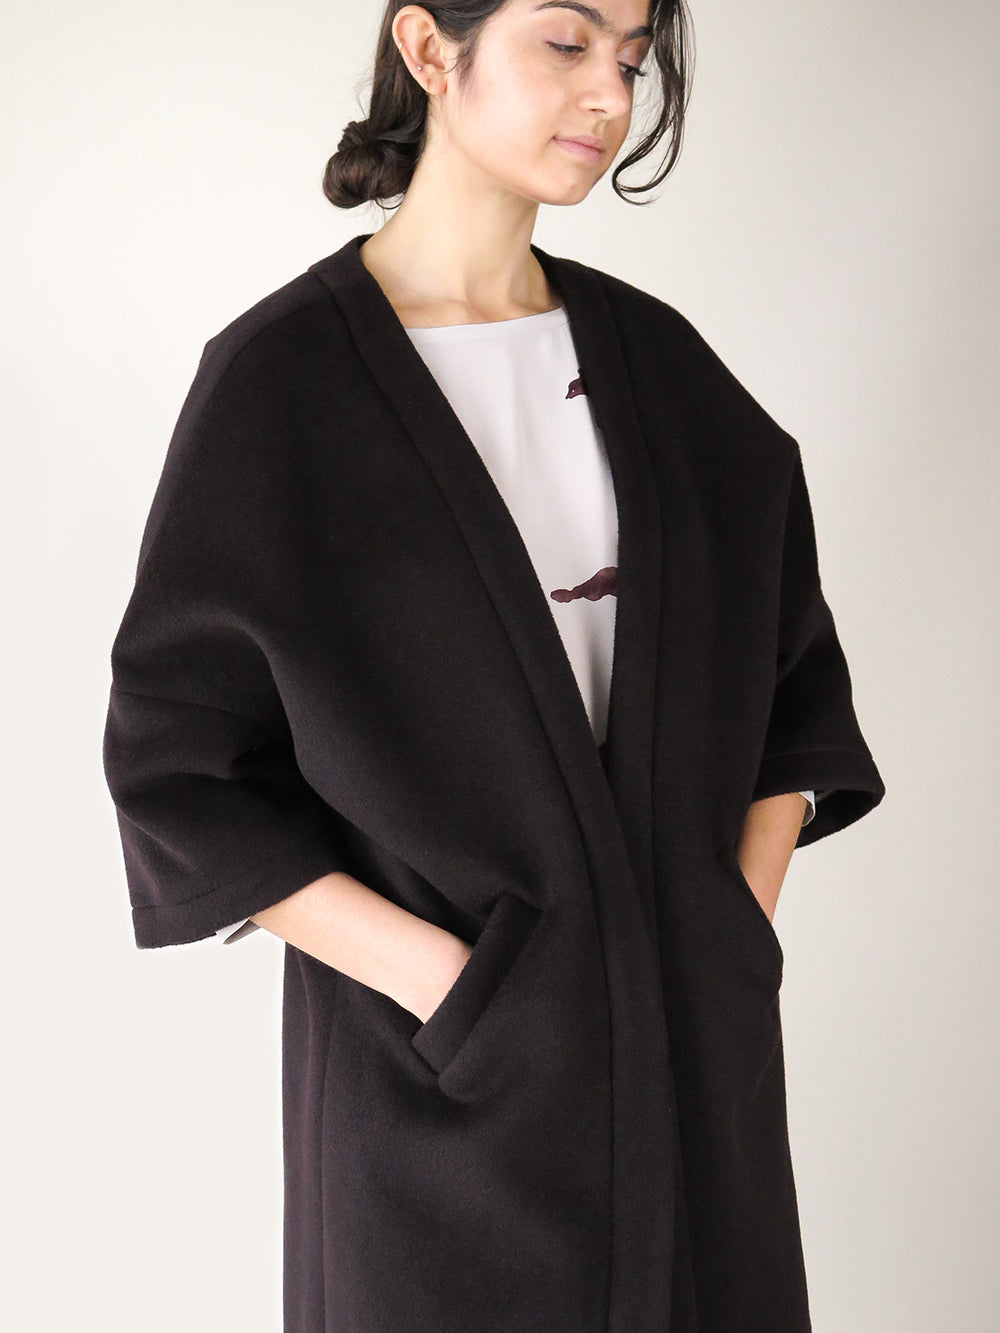 clyde coat in paen black